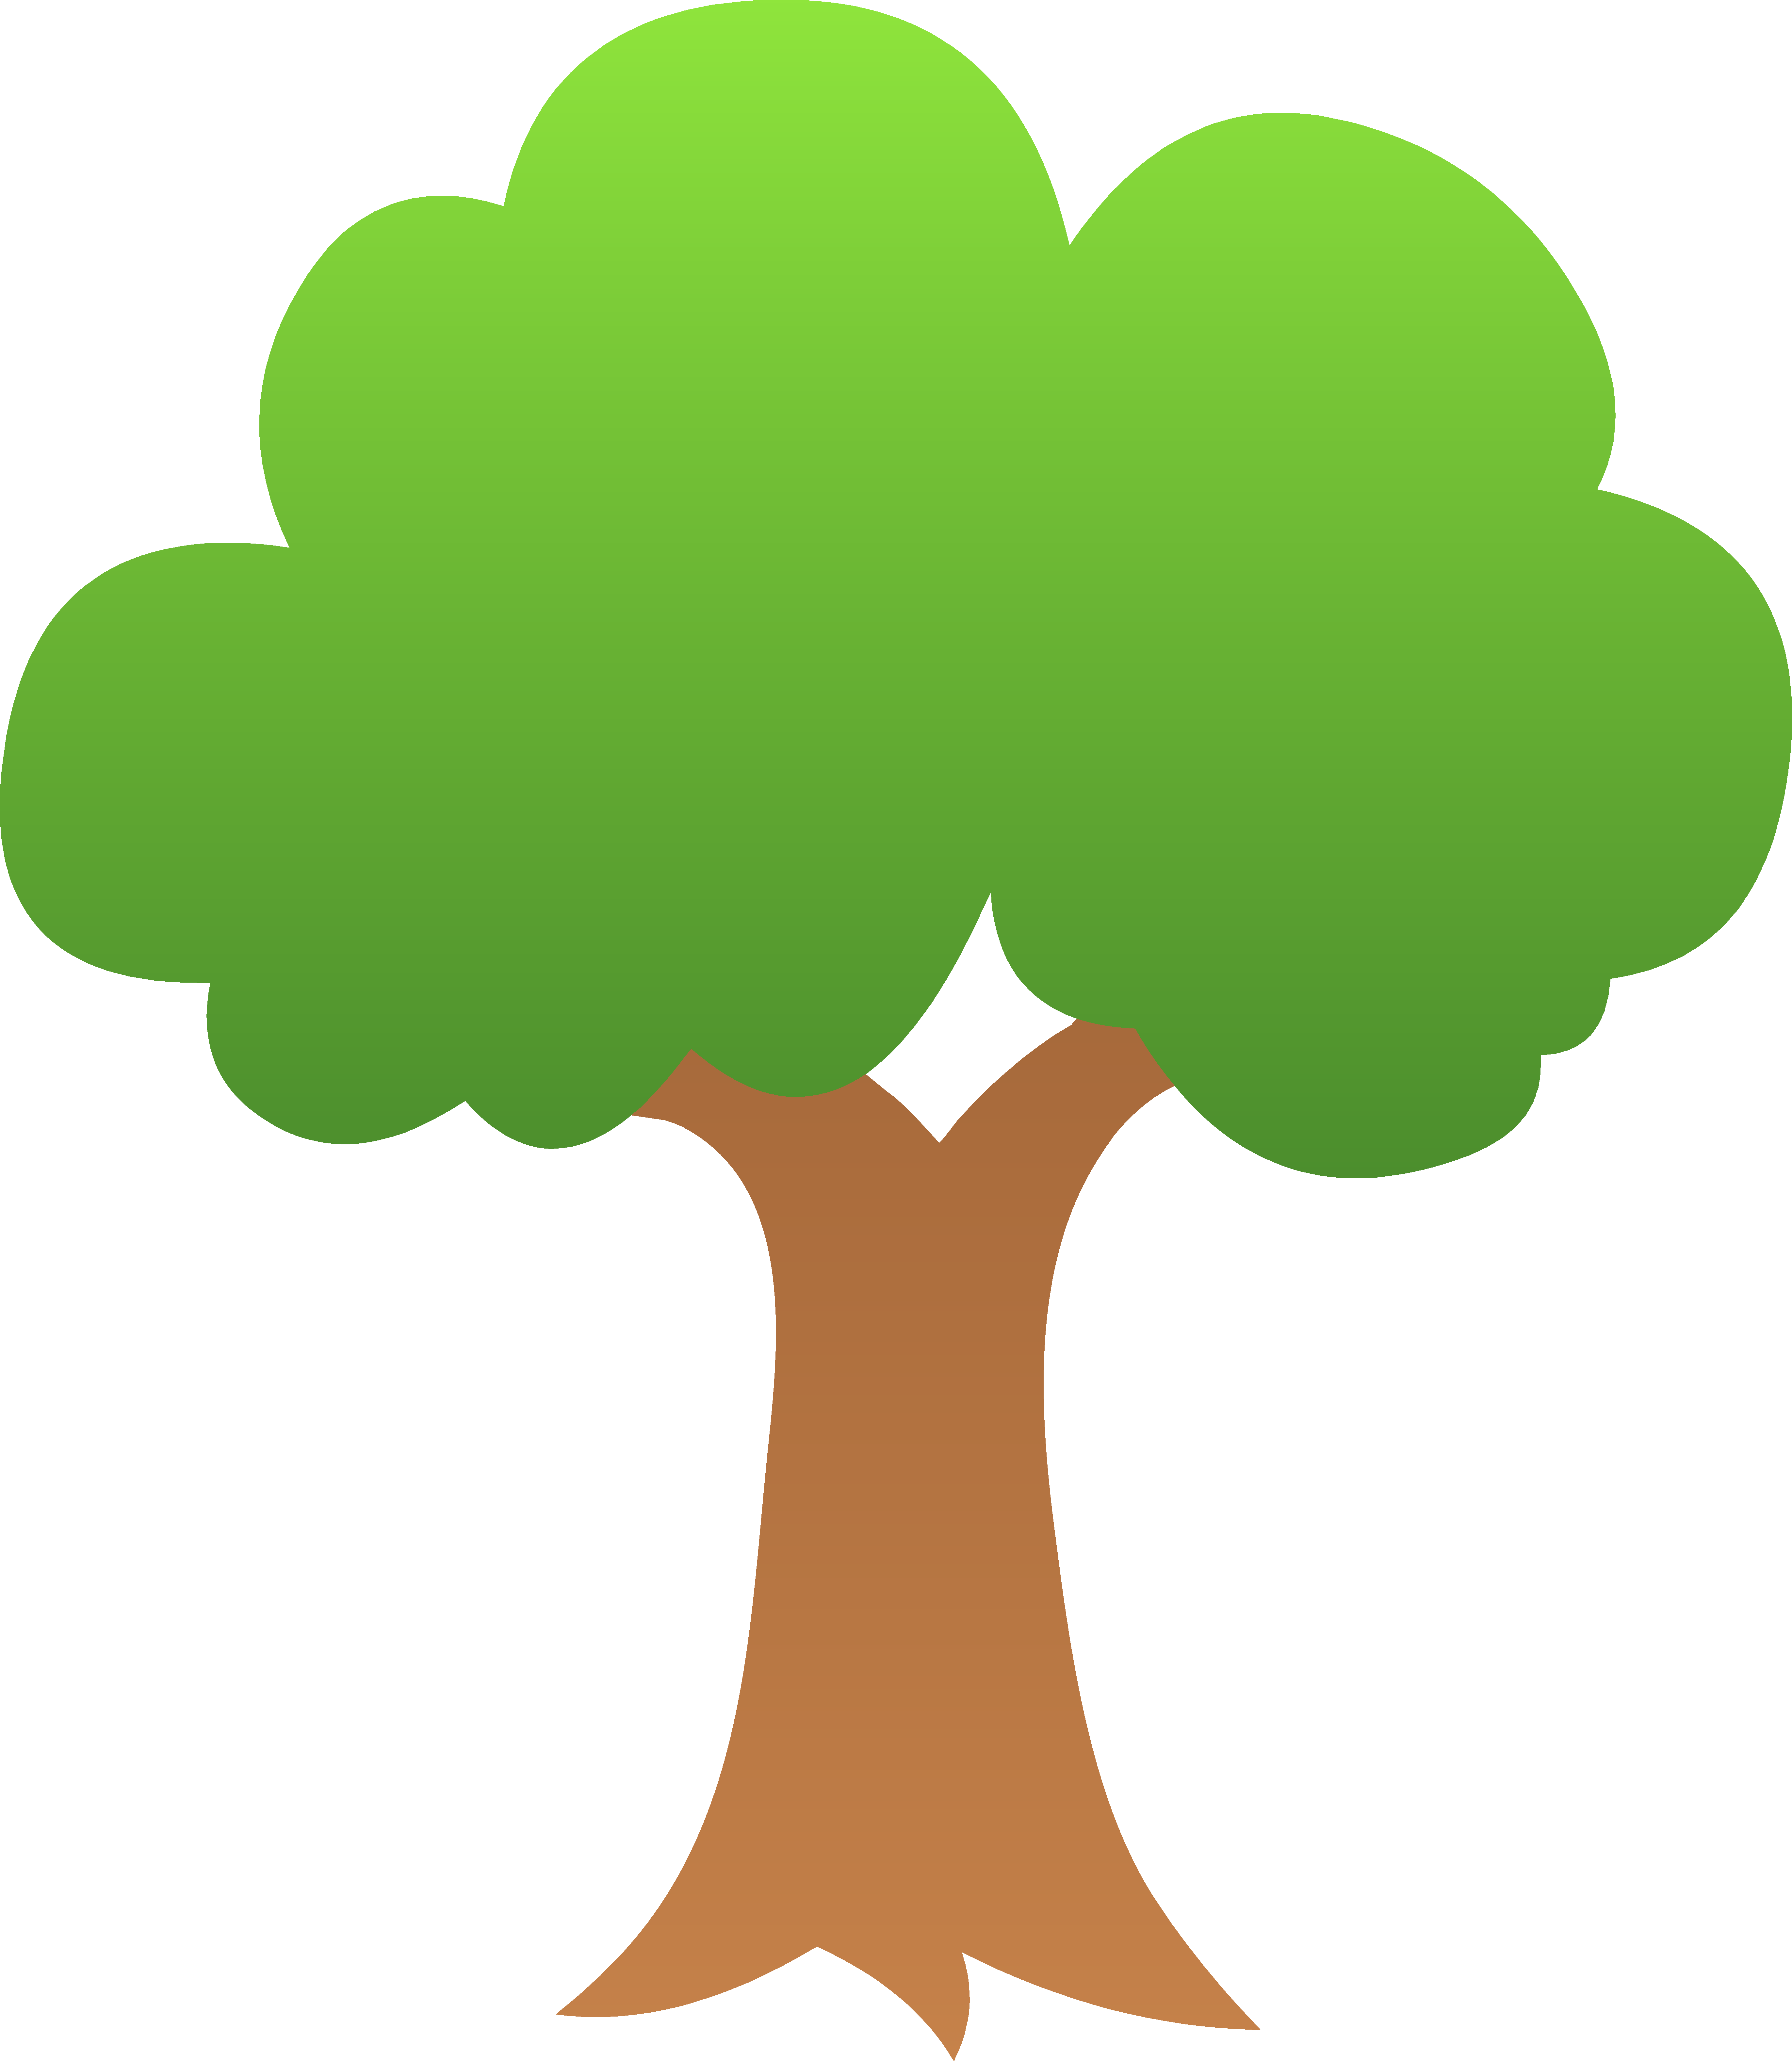 Wilderness clipart tress Tree Clipart Free clipart Clipart